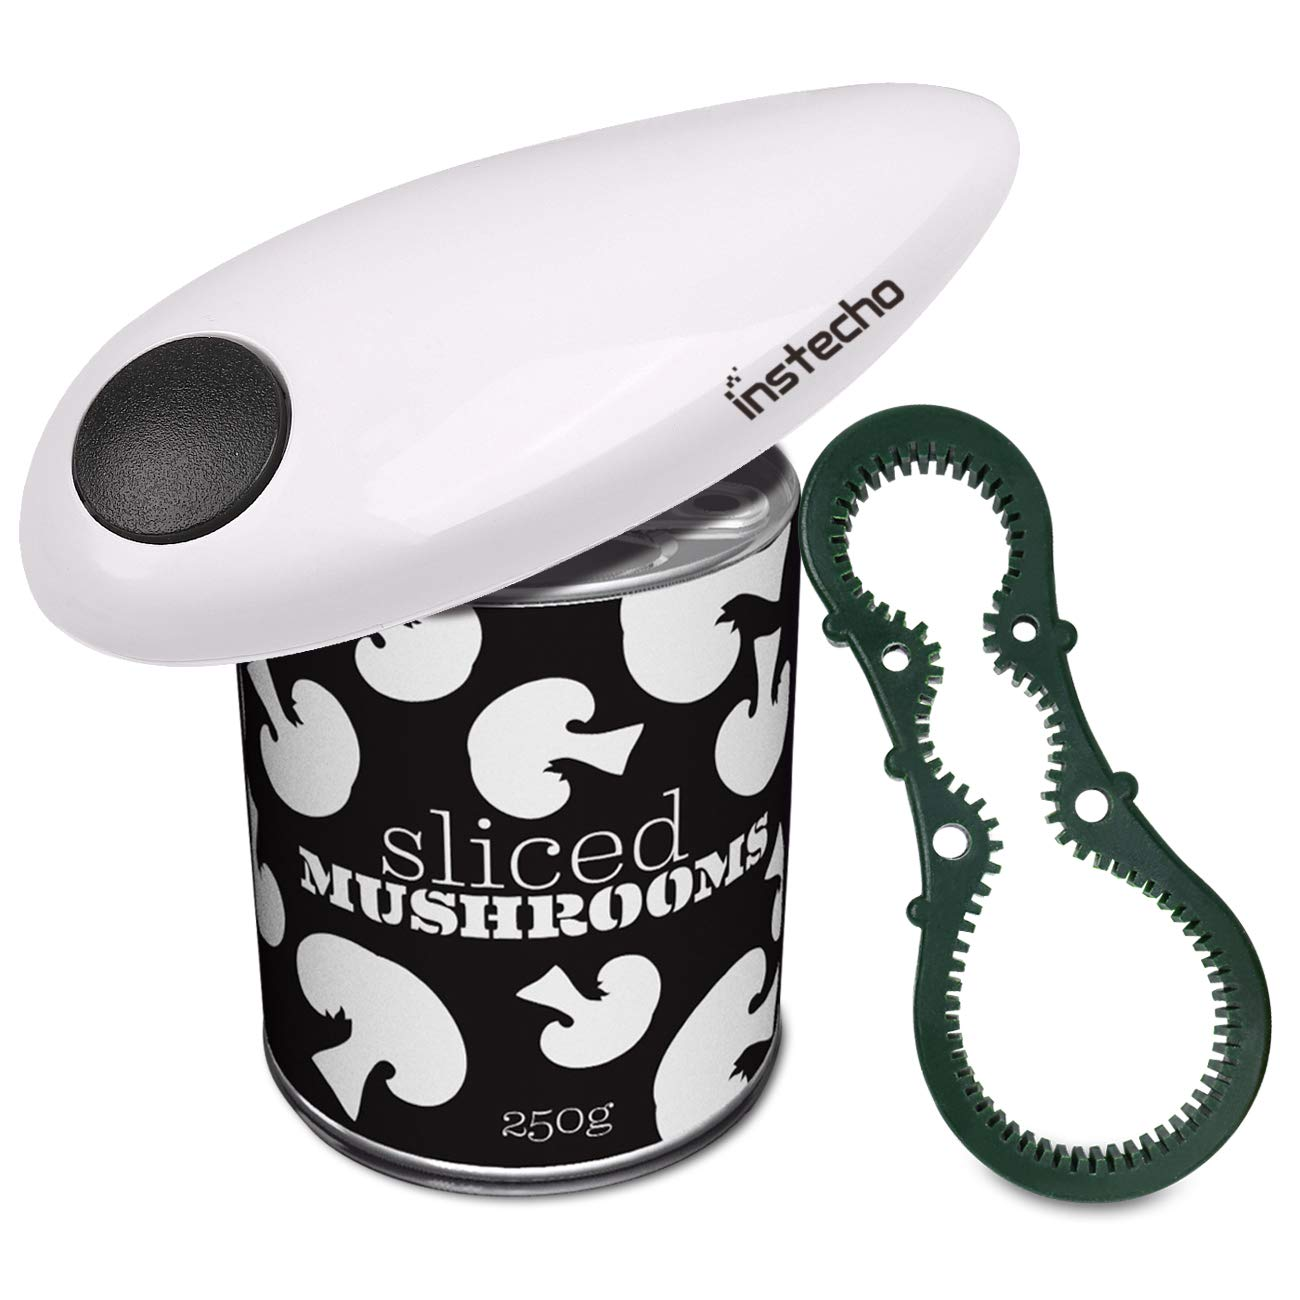 instecho Electric Can Opener, M, White-8 AUKA